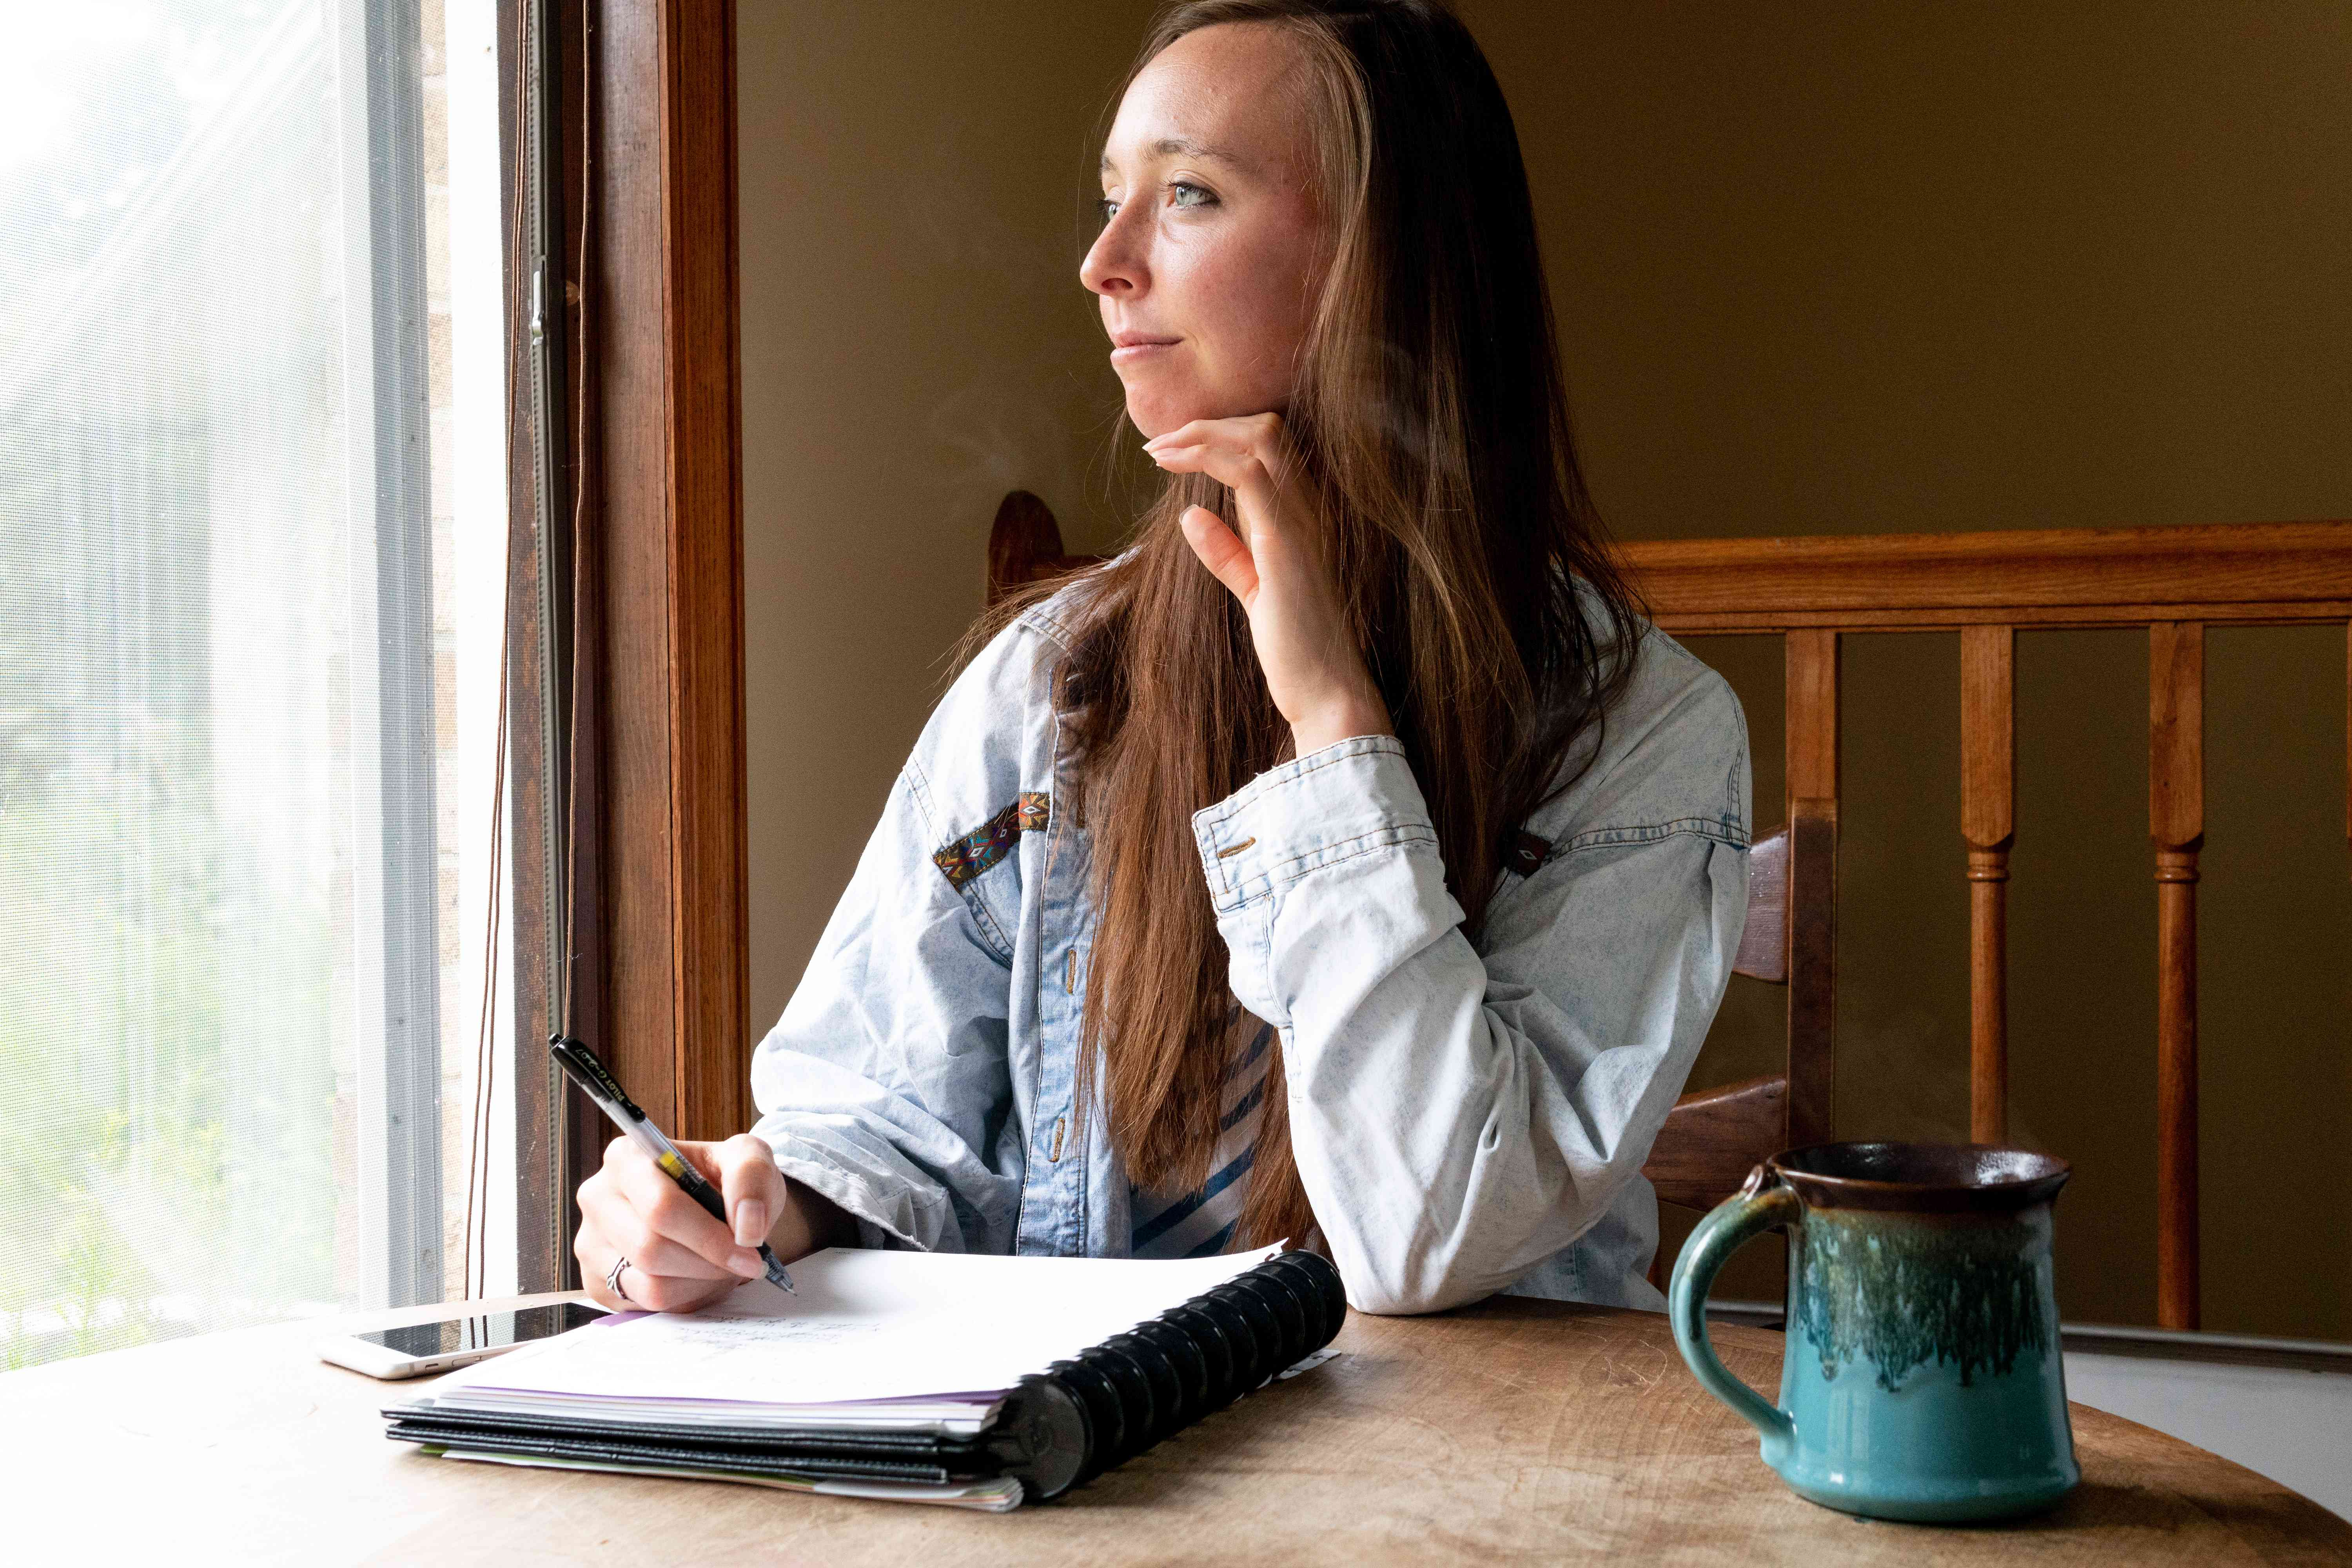 a young woman with notebook and pen stares out window contemplating